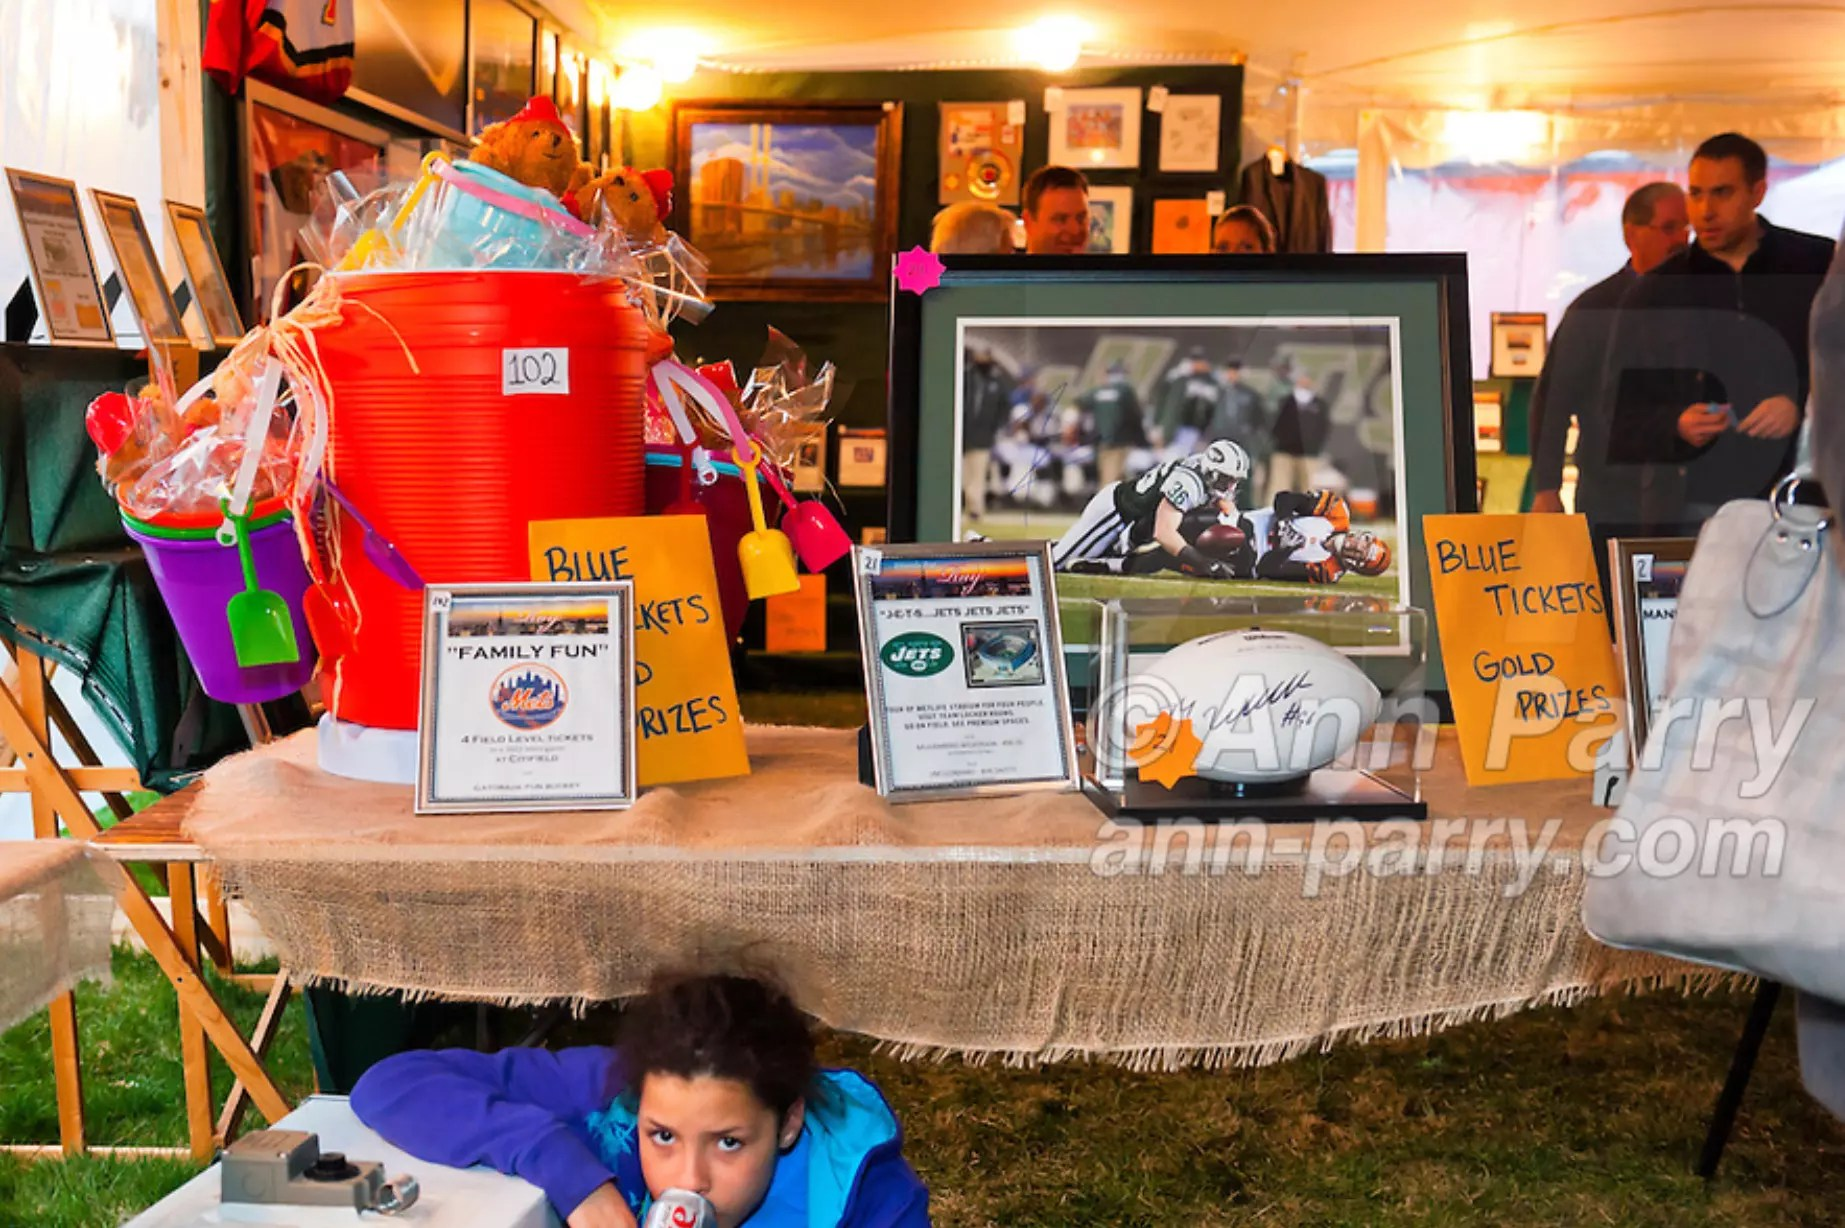 East Meadow, NY, USA. March 31, 2012. Fundraiser for firefighter Ray Pfeifer - battling cancer after months of recovery efforts at Ground Zero following 9/11 2001 Twin Towers attack - draws supporters from New York, Massachusetts and more, at East Meadow Firefighters Benevolent Hall.